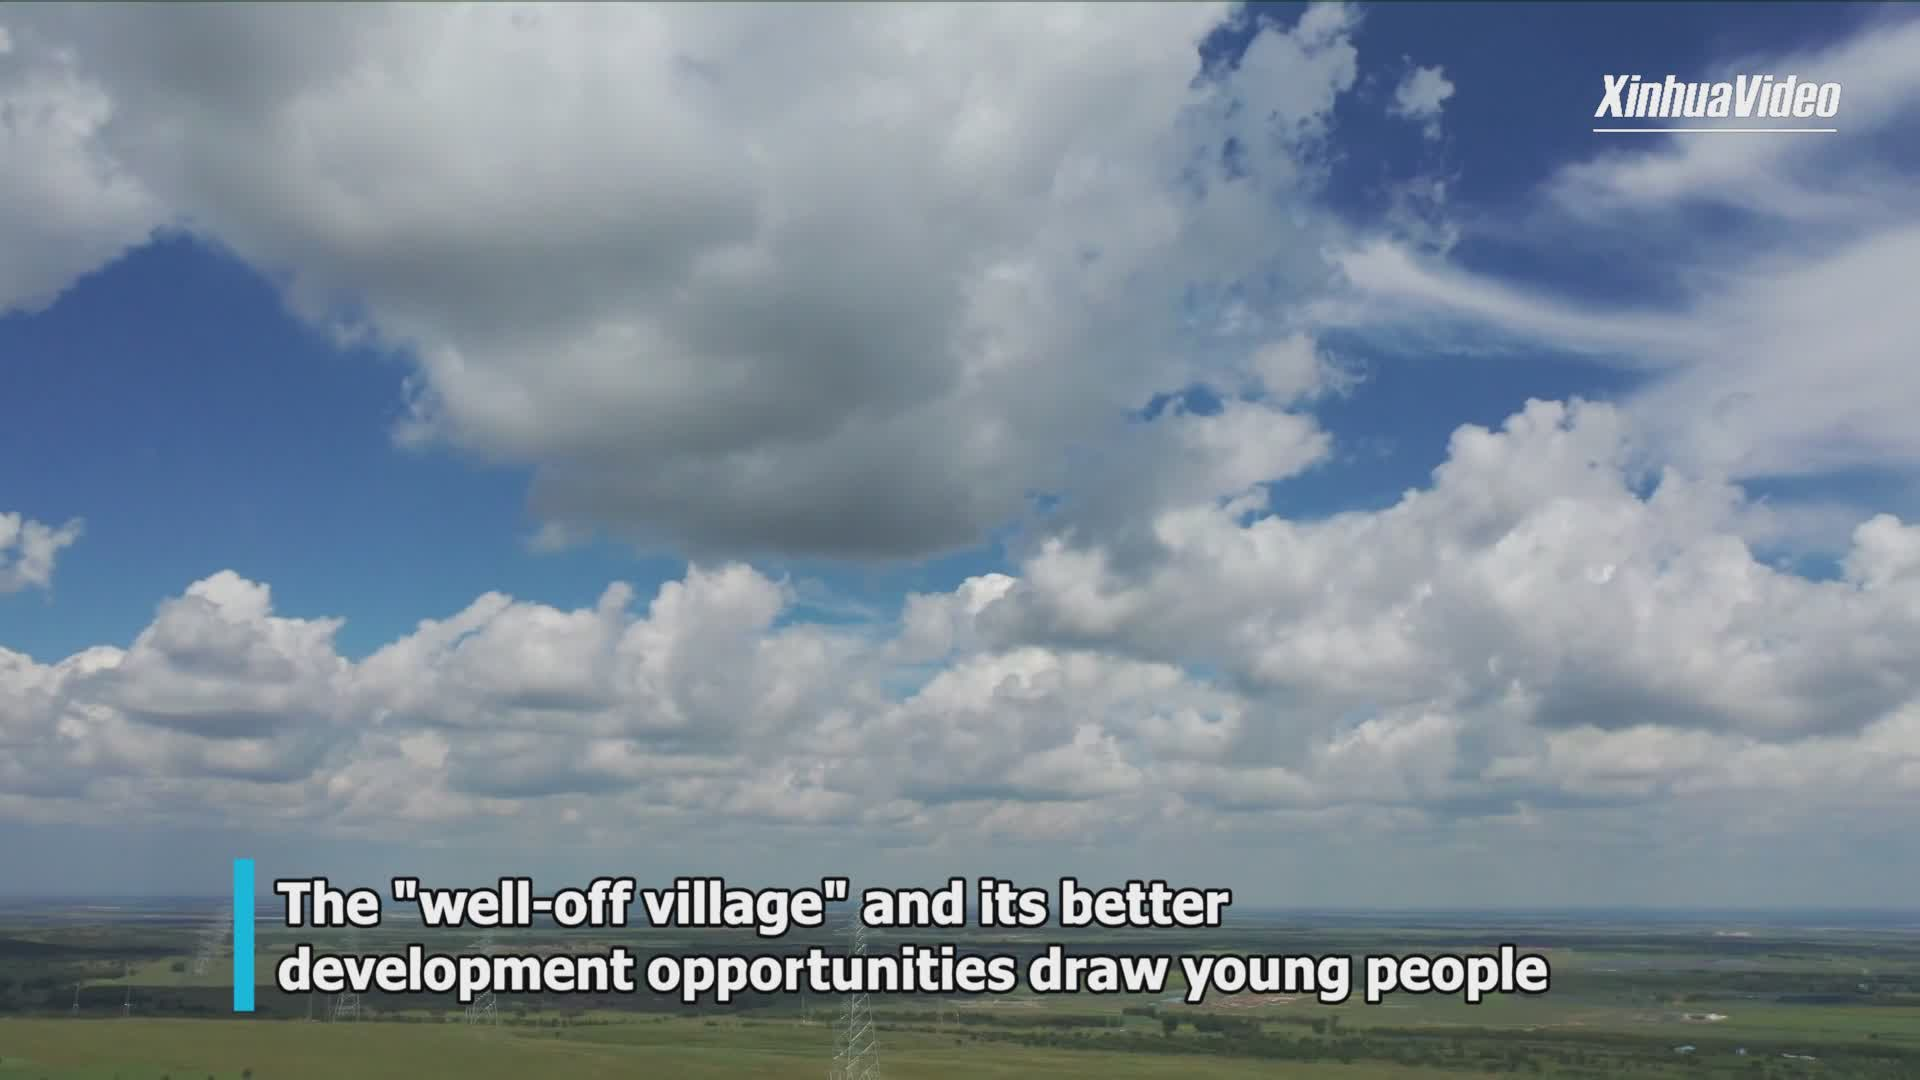 Chinese village out of poverty draws young people